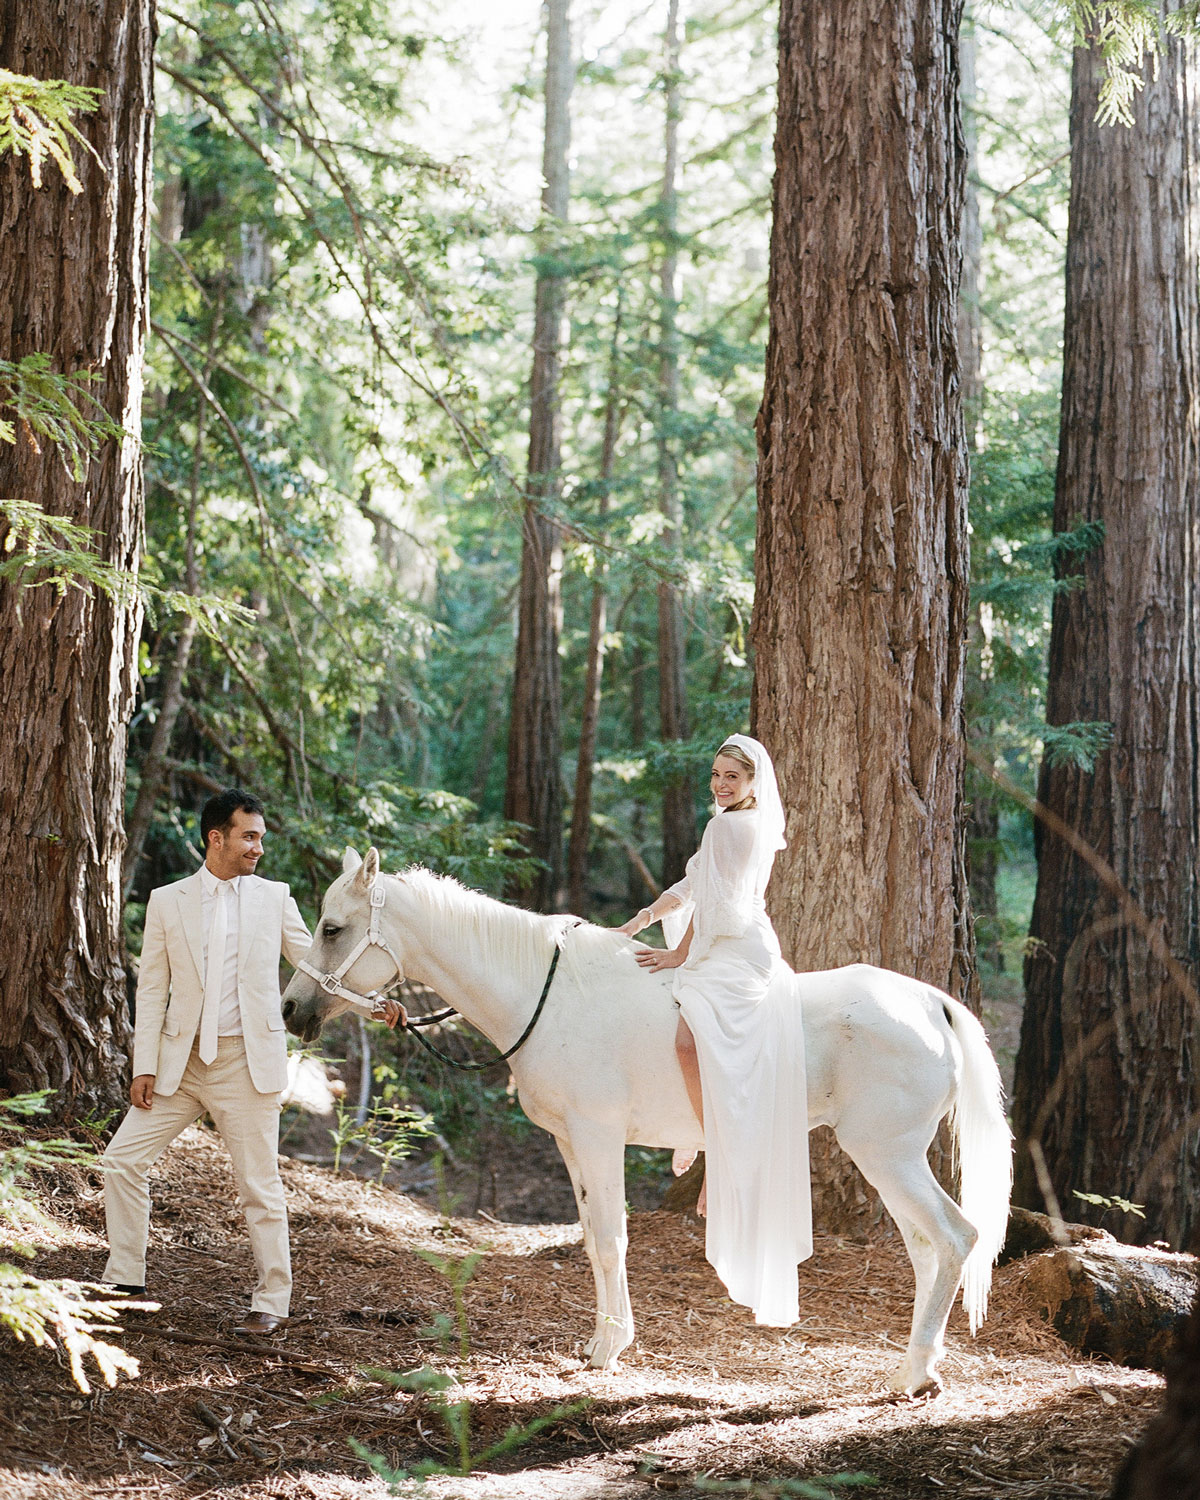 breelayne-hunter-wedding-california-0061-barn-santa-lucia-preserve-horse-s112849.jpg